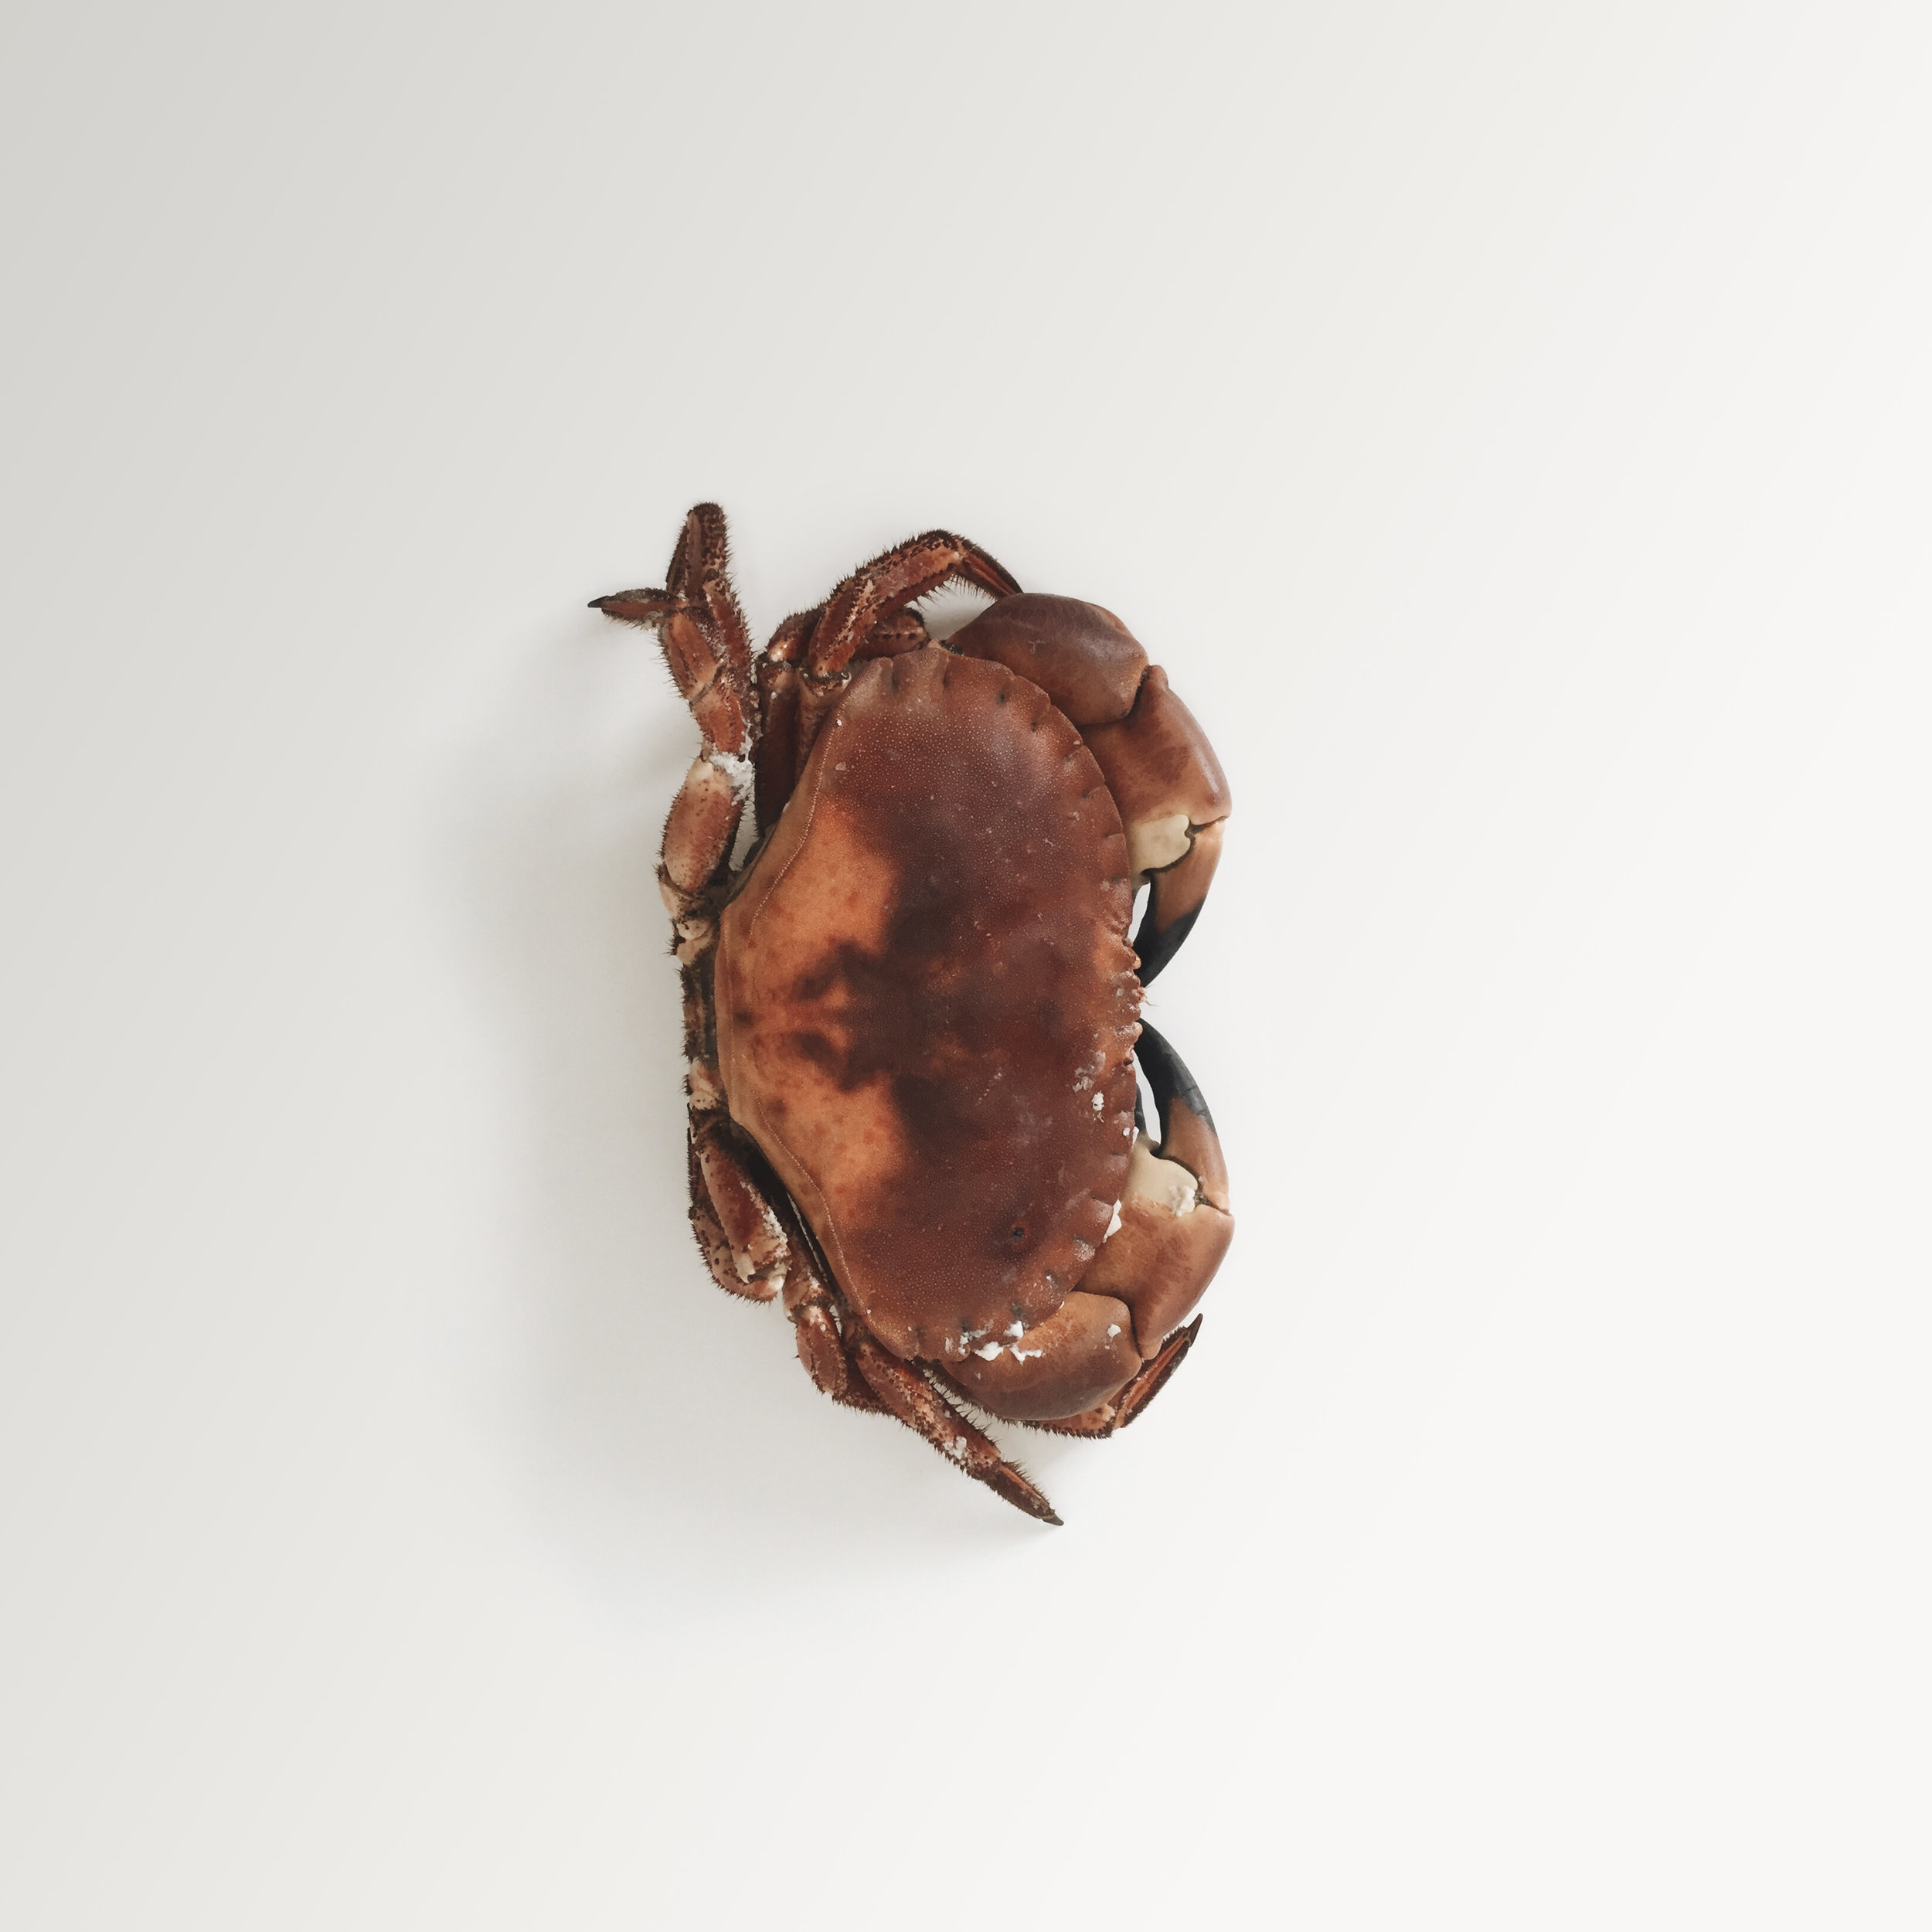 A simple, minimalist, contemporary, fine art photograph of a crab